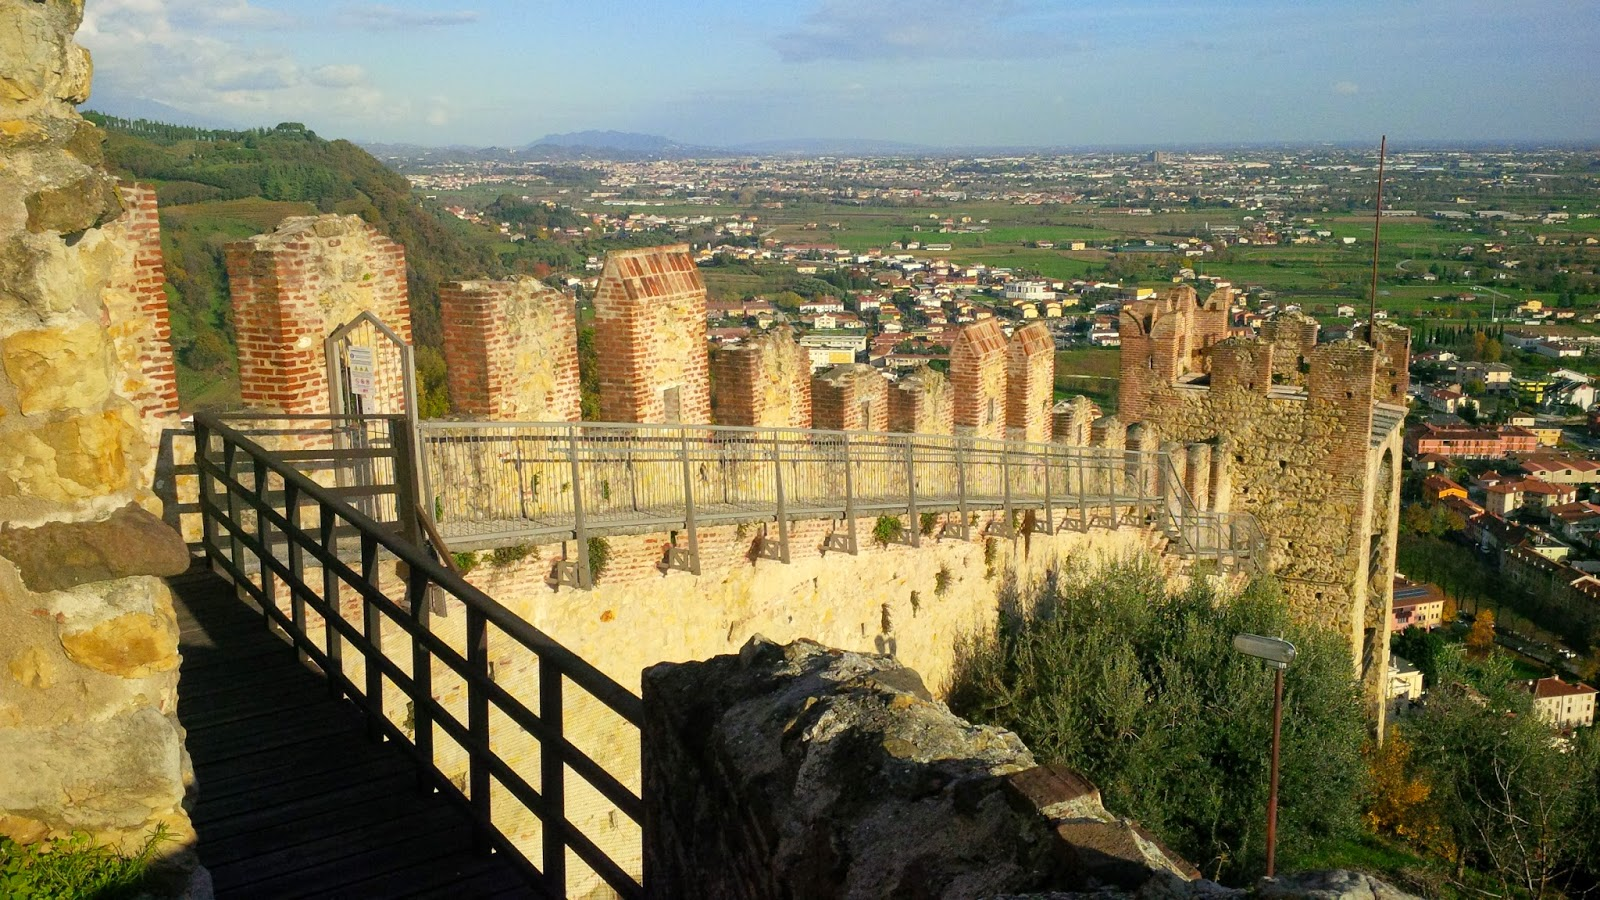 The great wall of Marostica